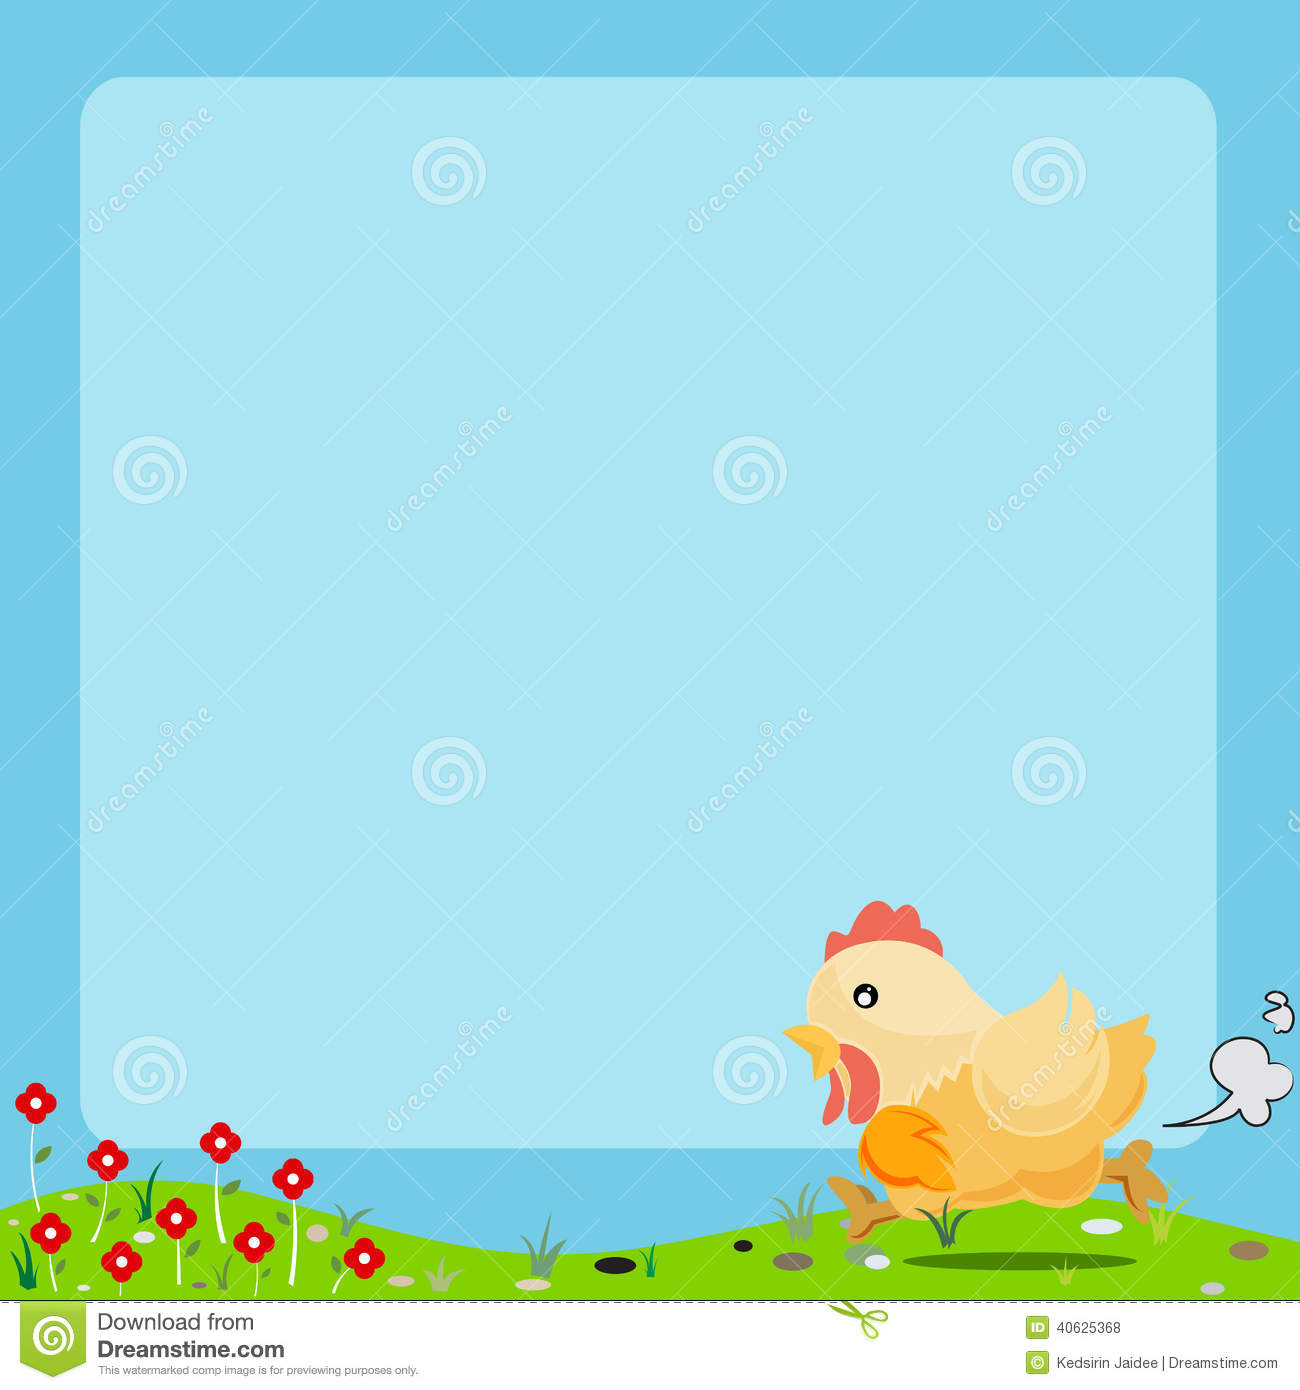 Royalty Free Stock Photos Cartoon Animal Frame Cute Chicken Background Image40625368 on animal farm landscape